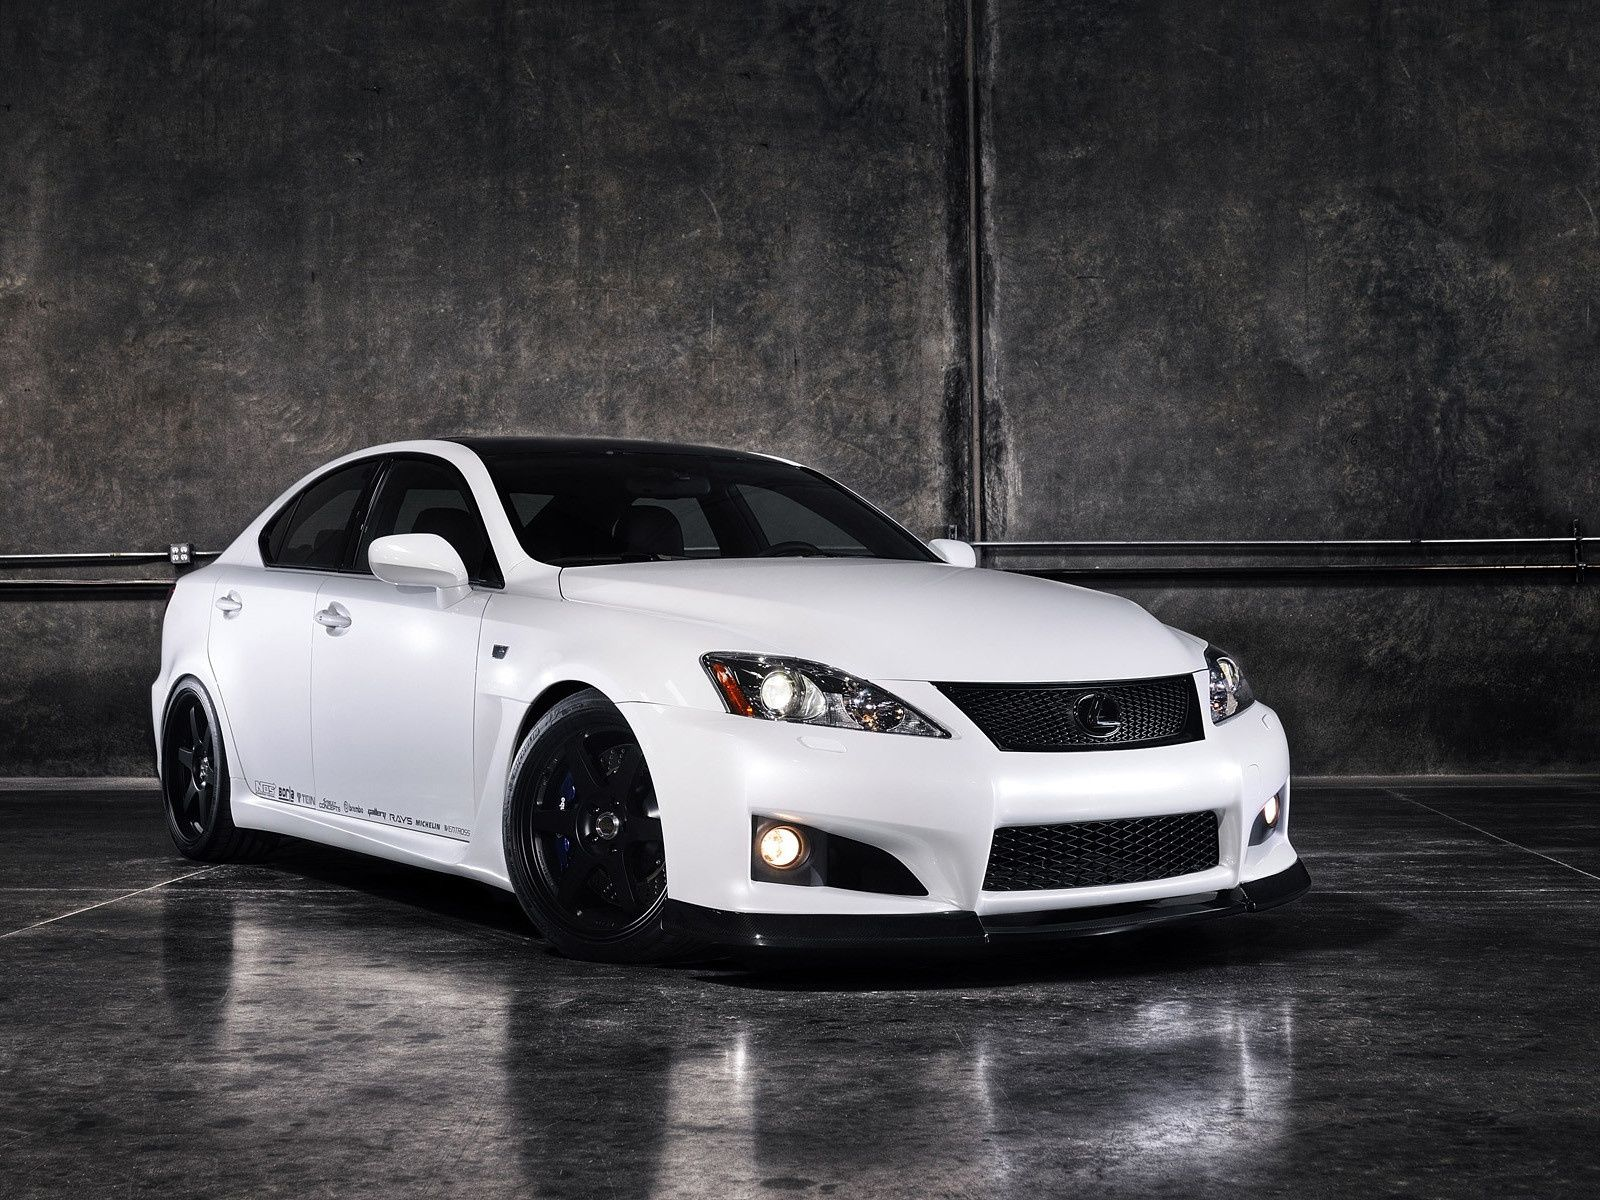 I WILL have a Lexus IS 250 one day Hopefully soon